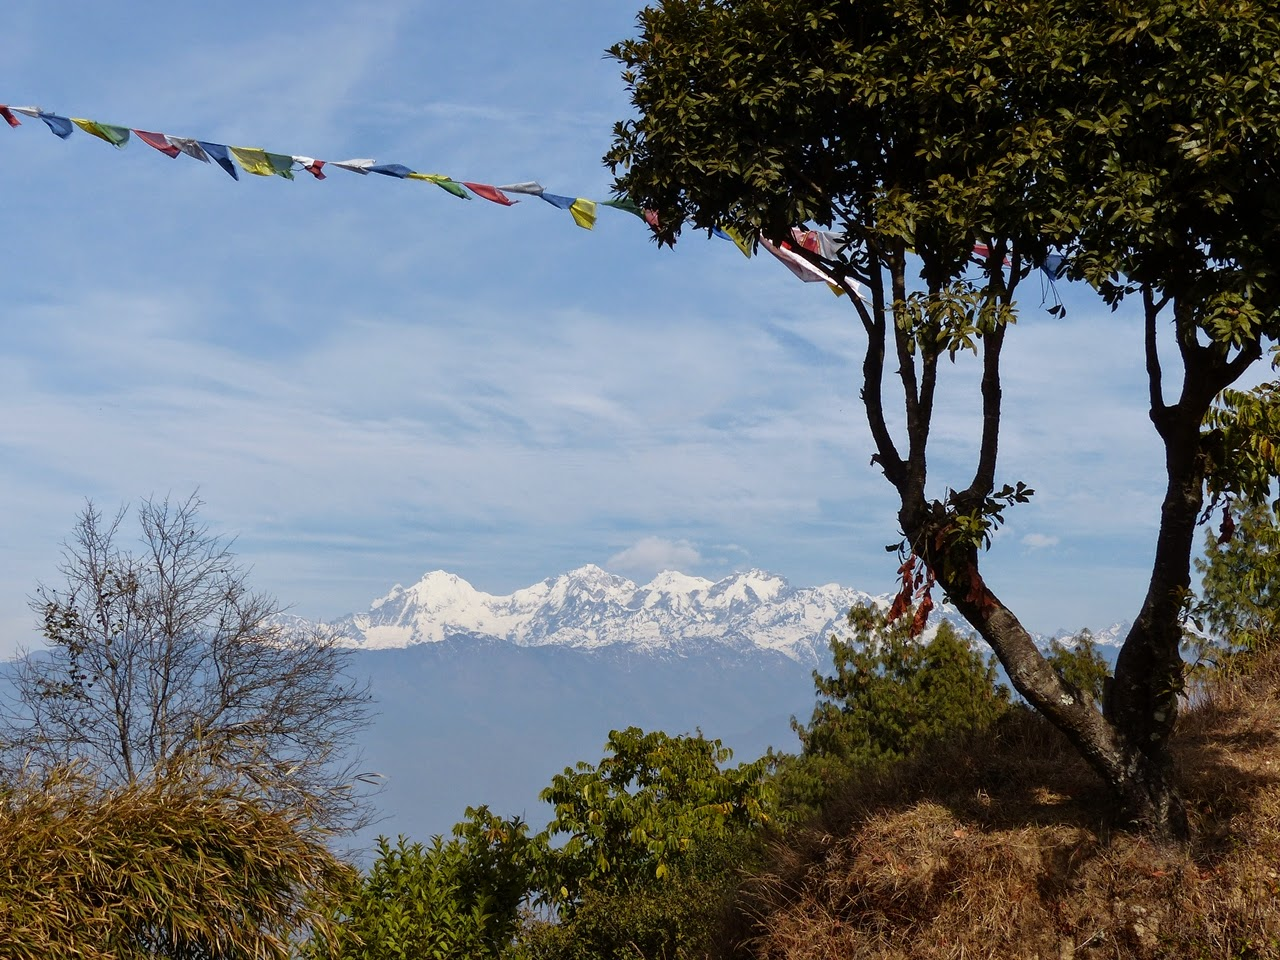 Himalayas peaks as seen from Kakani, Nepal